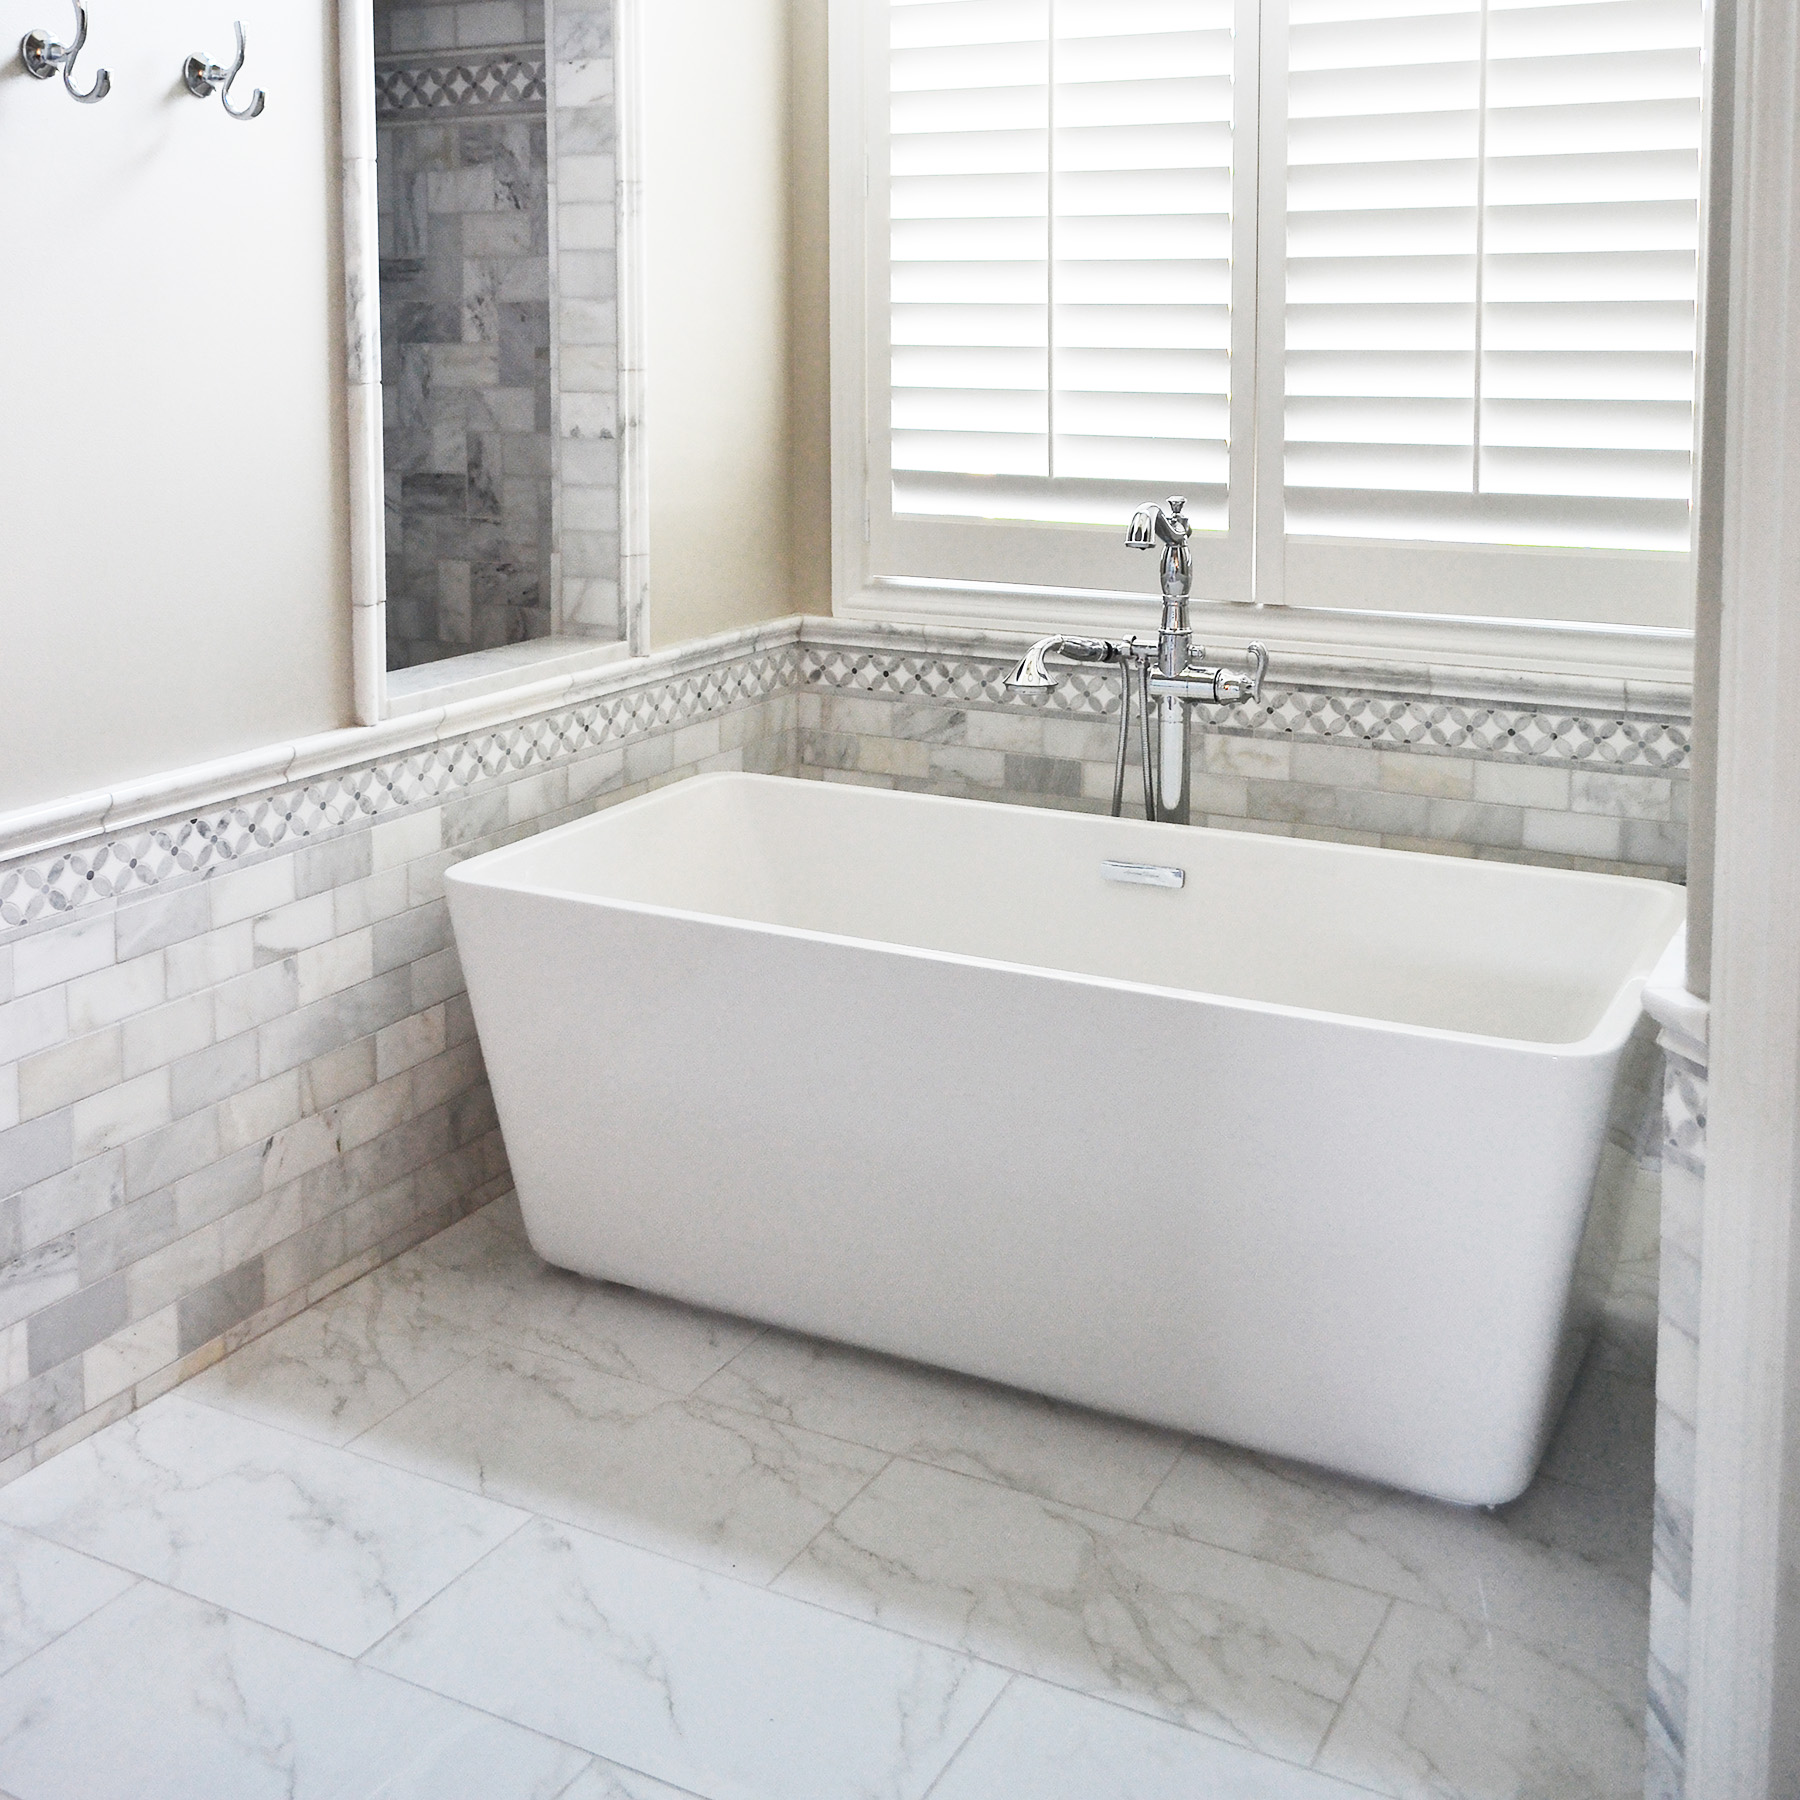 bathtub enchanting contemporary with faucet designs gorgeous bathroom tub stupendous free oval freestanding standing ideas shower pictures for beautiful bath